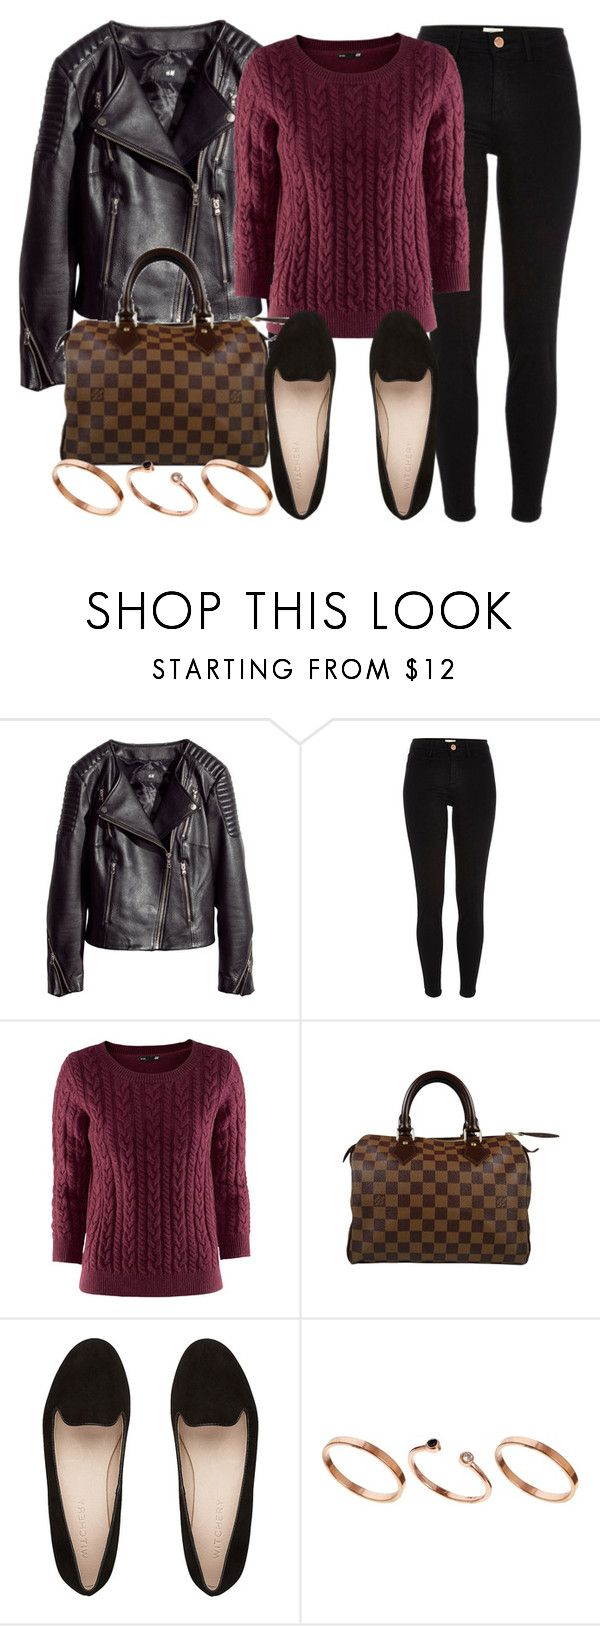 """""""Style #9819"""" by vany-alvarado ❤ liked on Polyvore featuring H&M, River Island, Louis Vuitton, ASOS, women's clothing, women, female, woman, misses and juniors"""